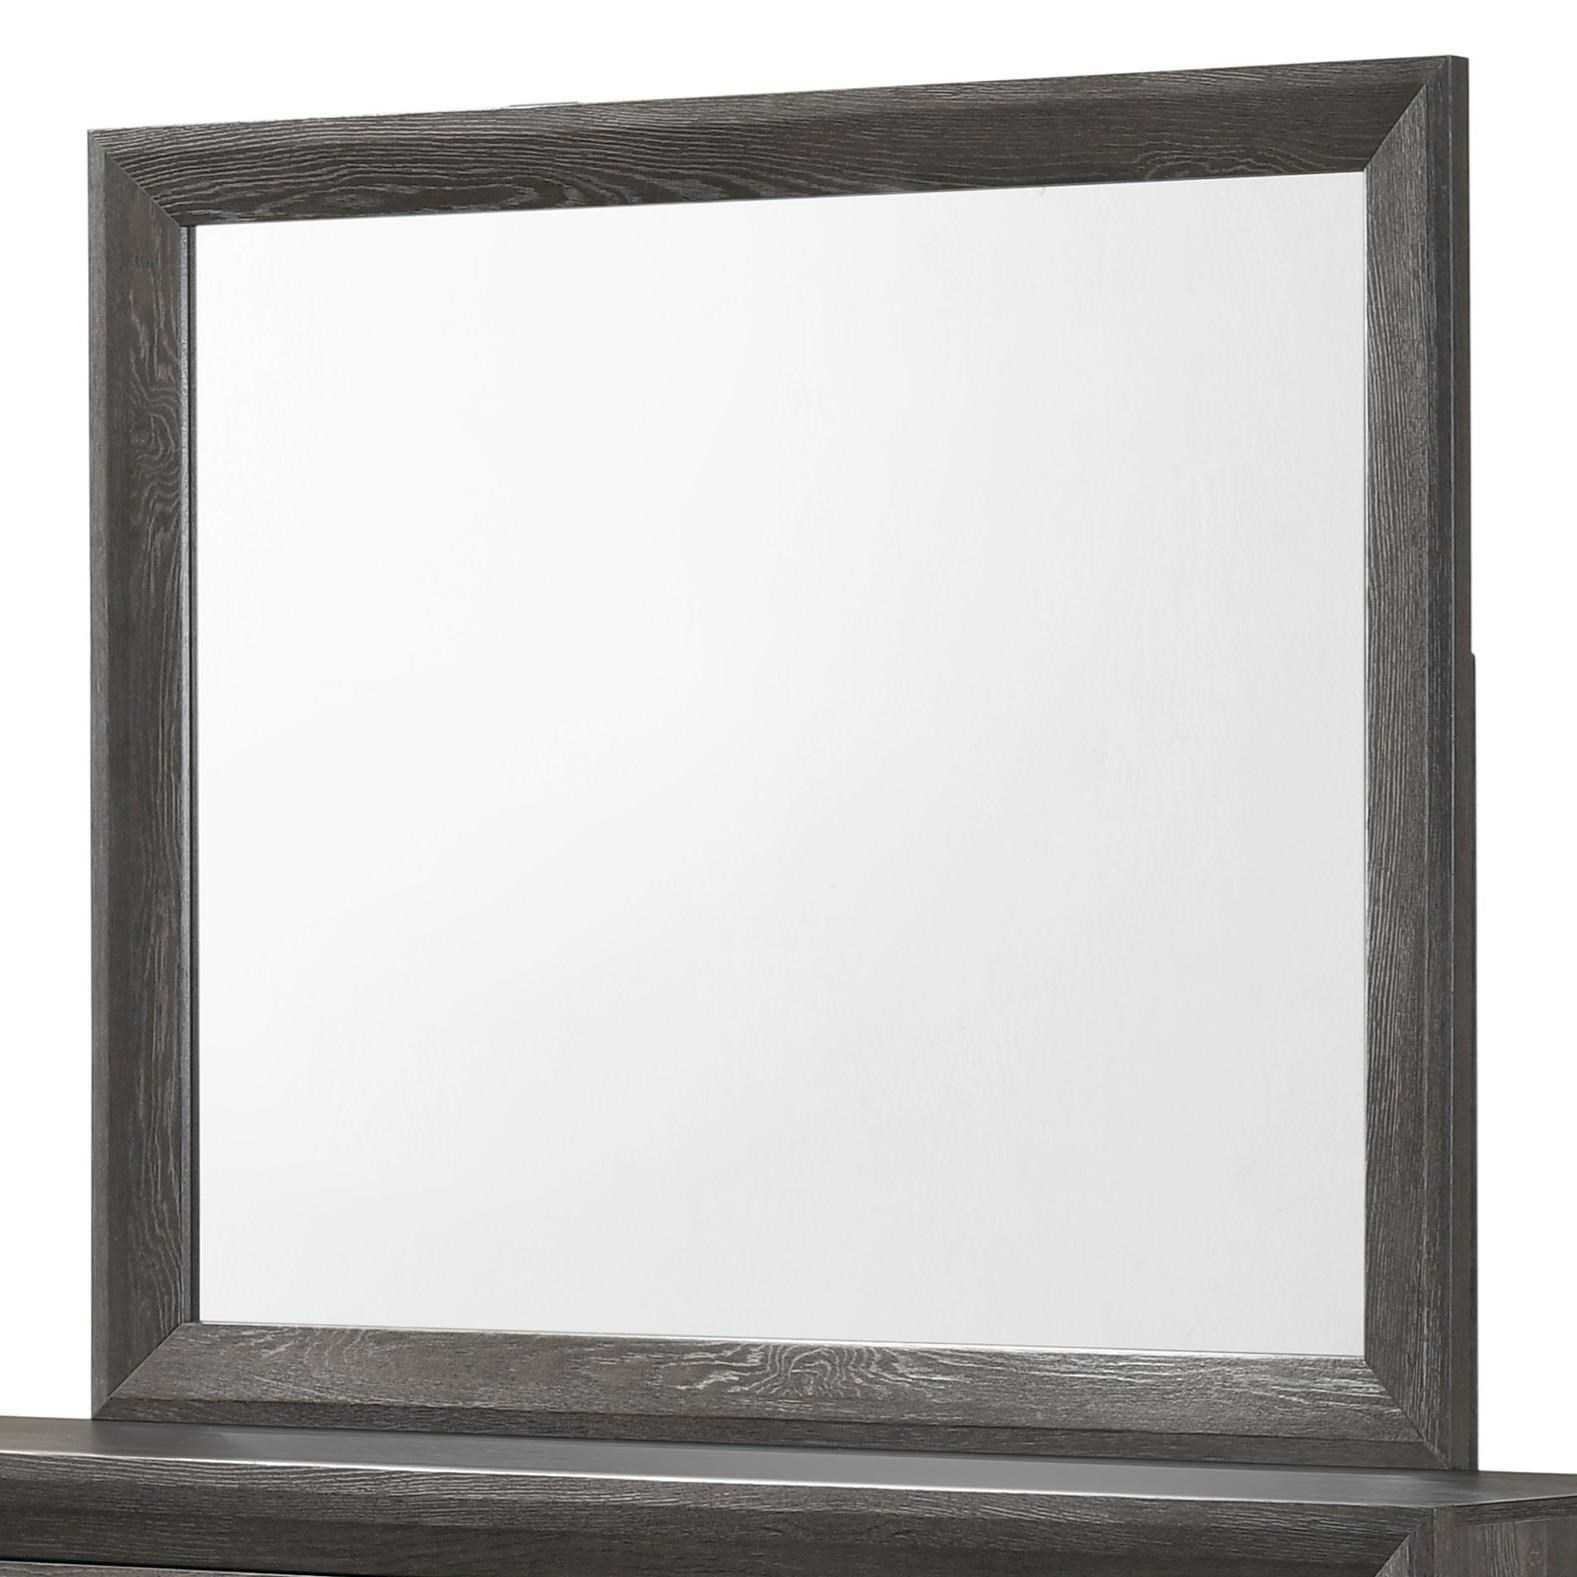 Adelaide Dresser Mirror by Crown Mark at Catalog Outlet